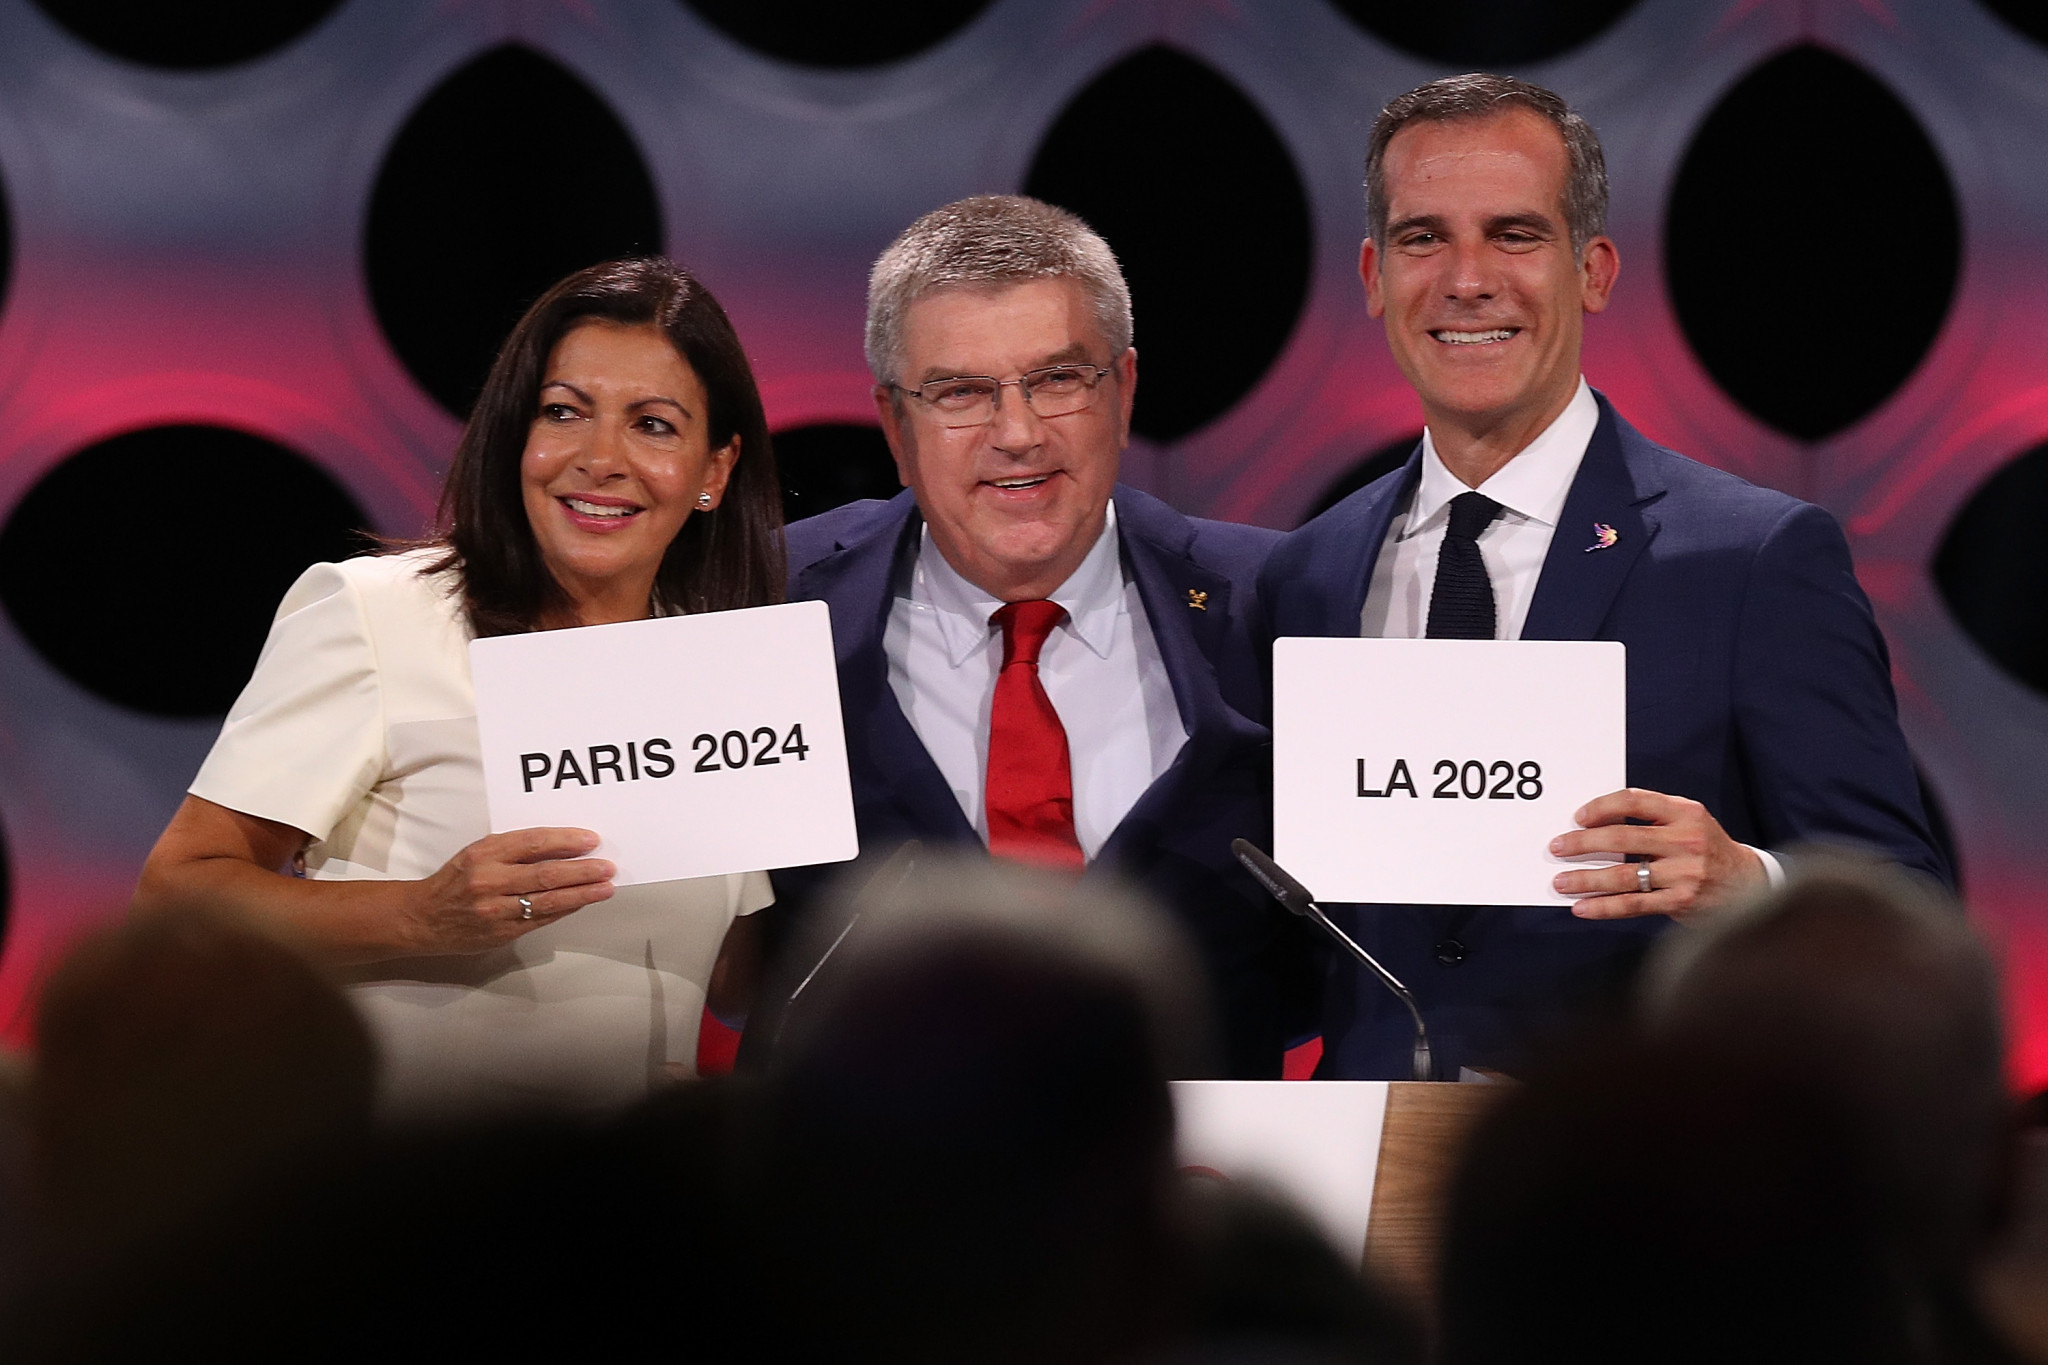 The last working group on the Olympic bidding process paved the way for the historic Paris 2024-Los Angeles 2028 double award ©Getty Images